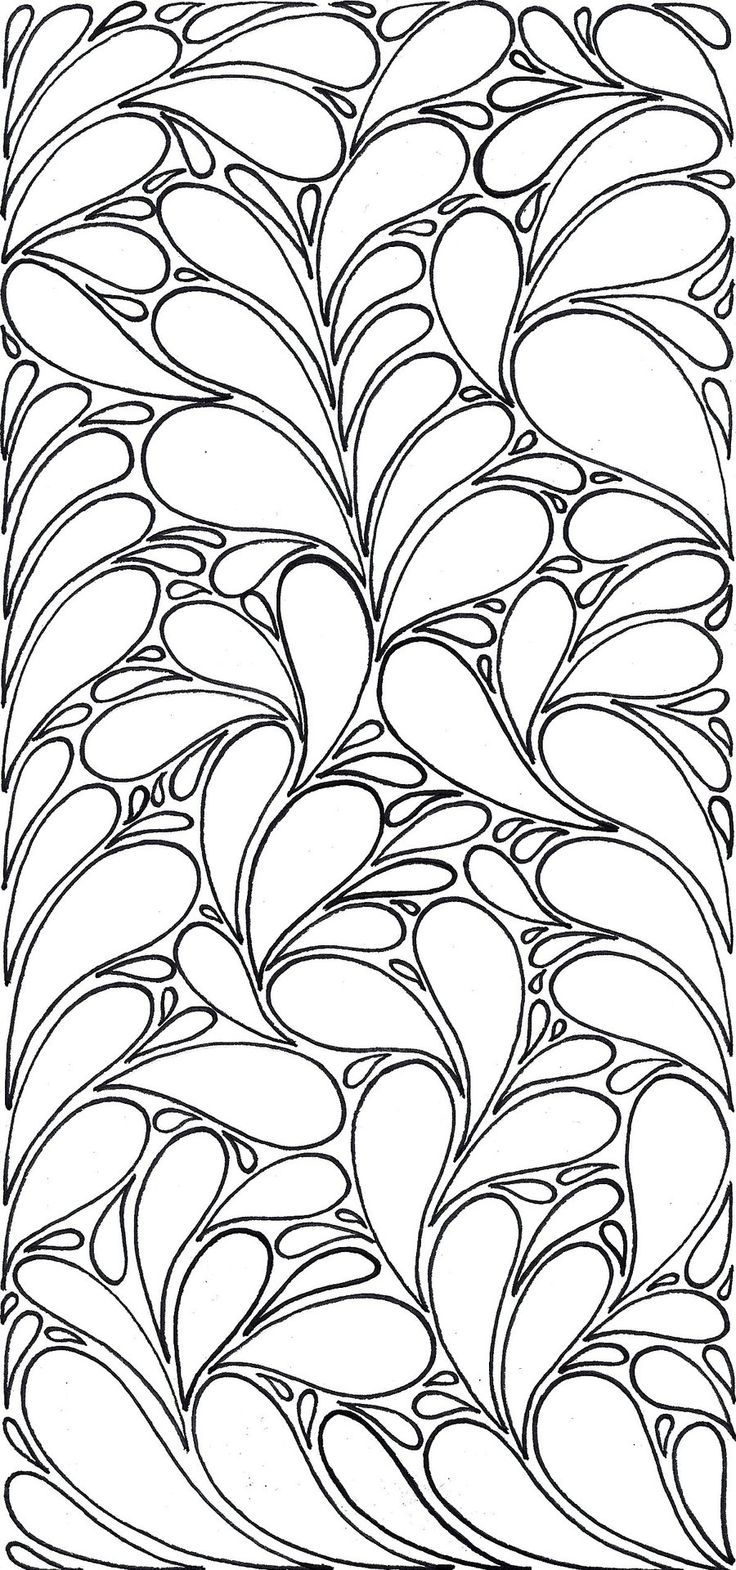 274 best coloring pages images on pinterest coloring books